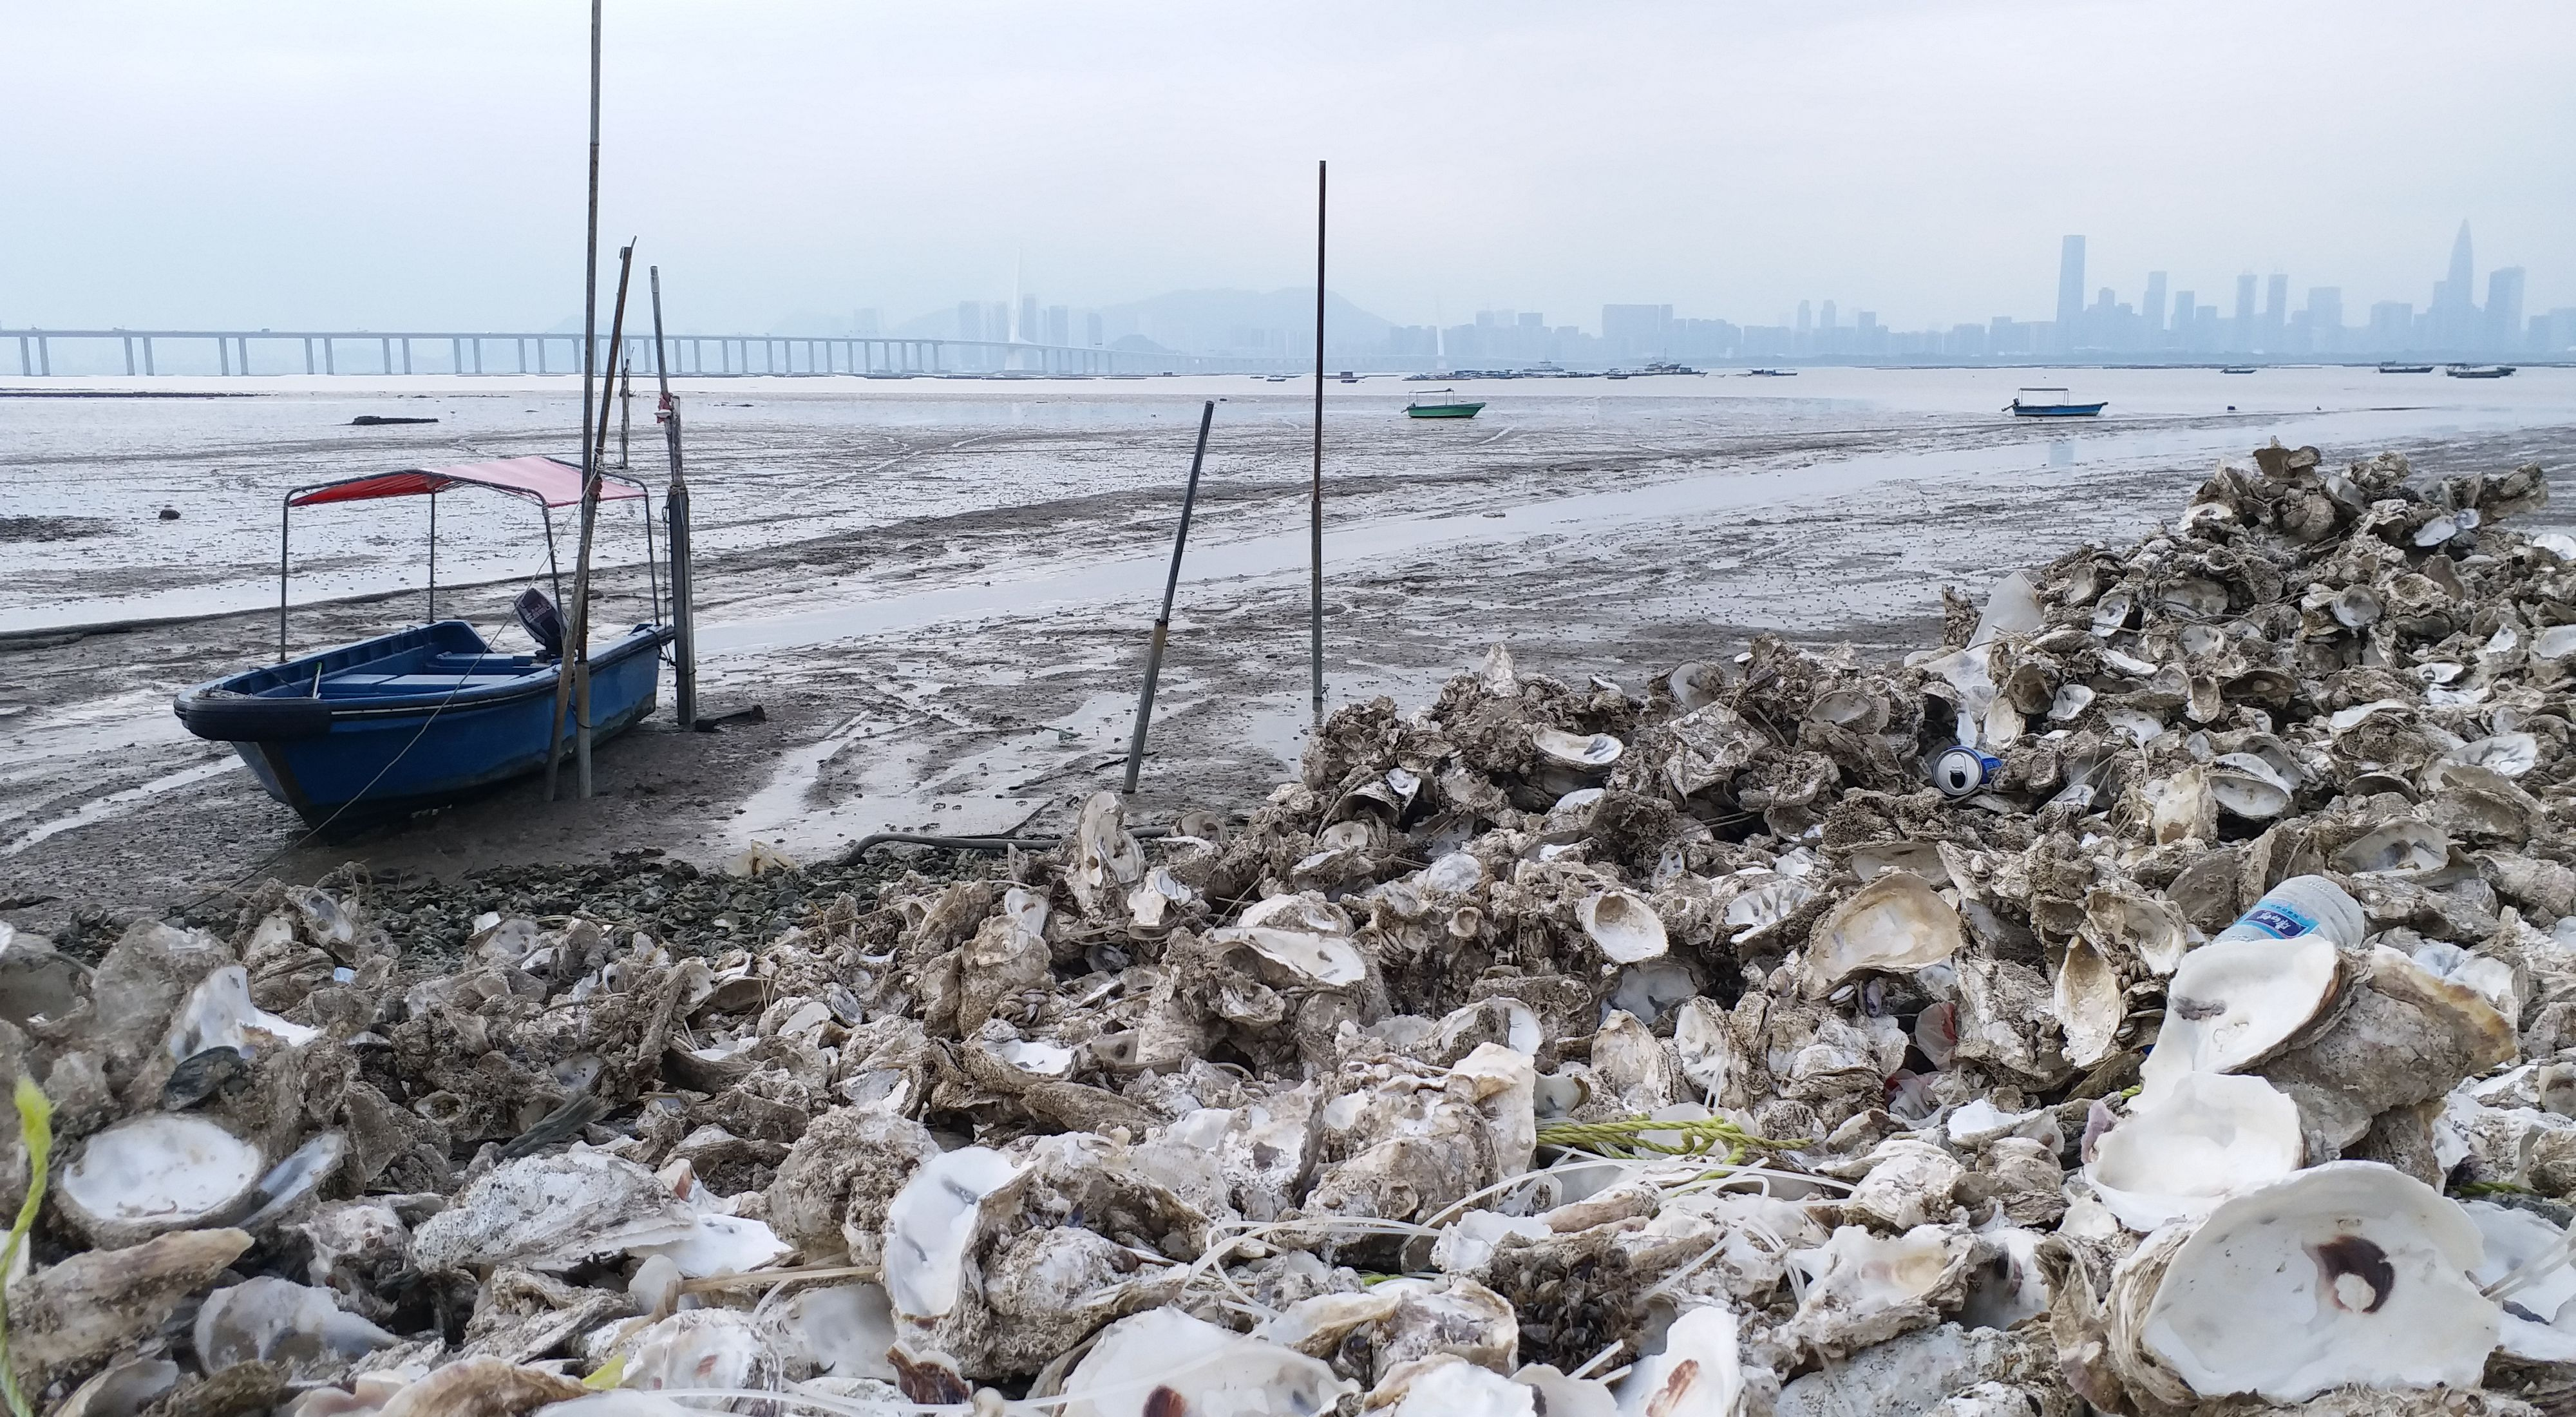 A small boat sits in mud near the shore that is lined with discarded oyster shells.